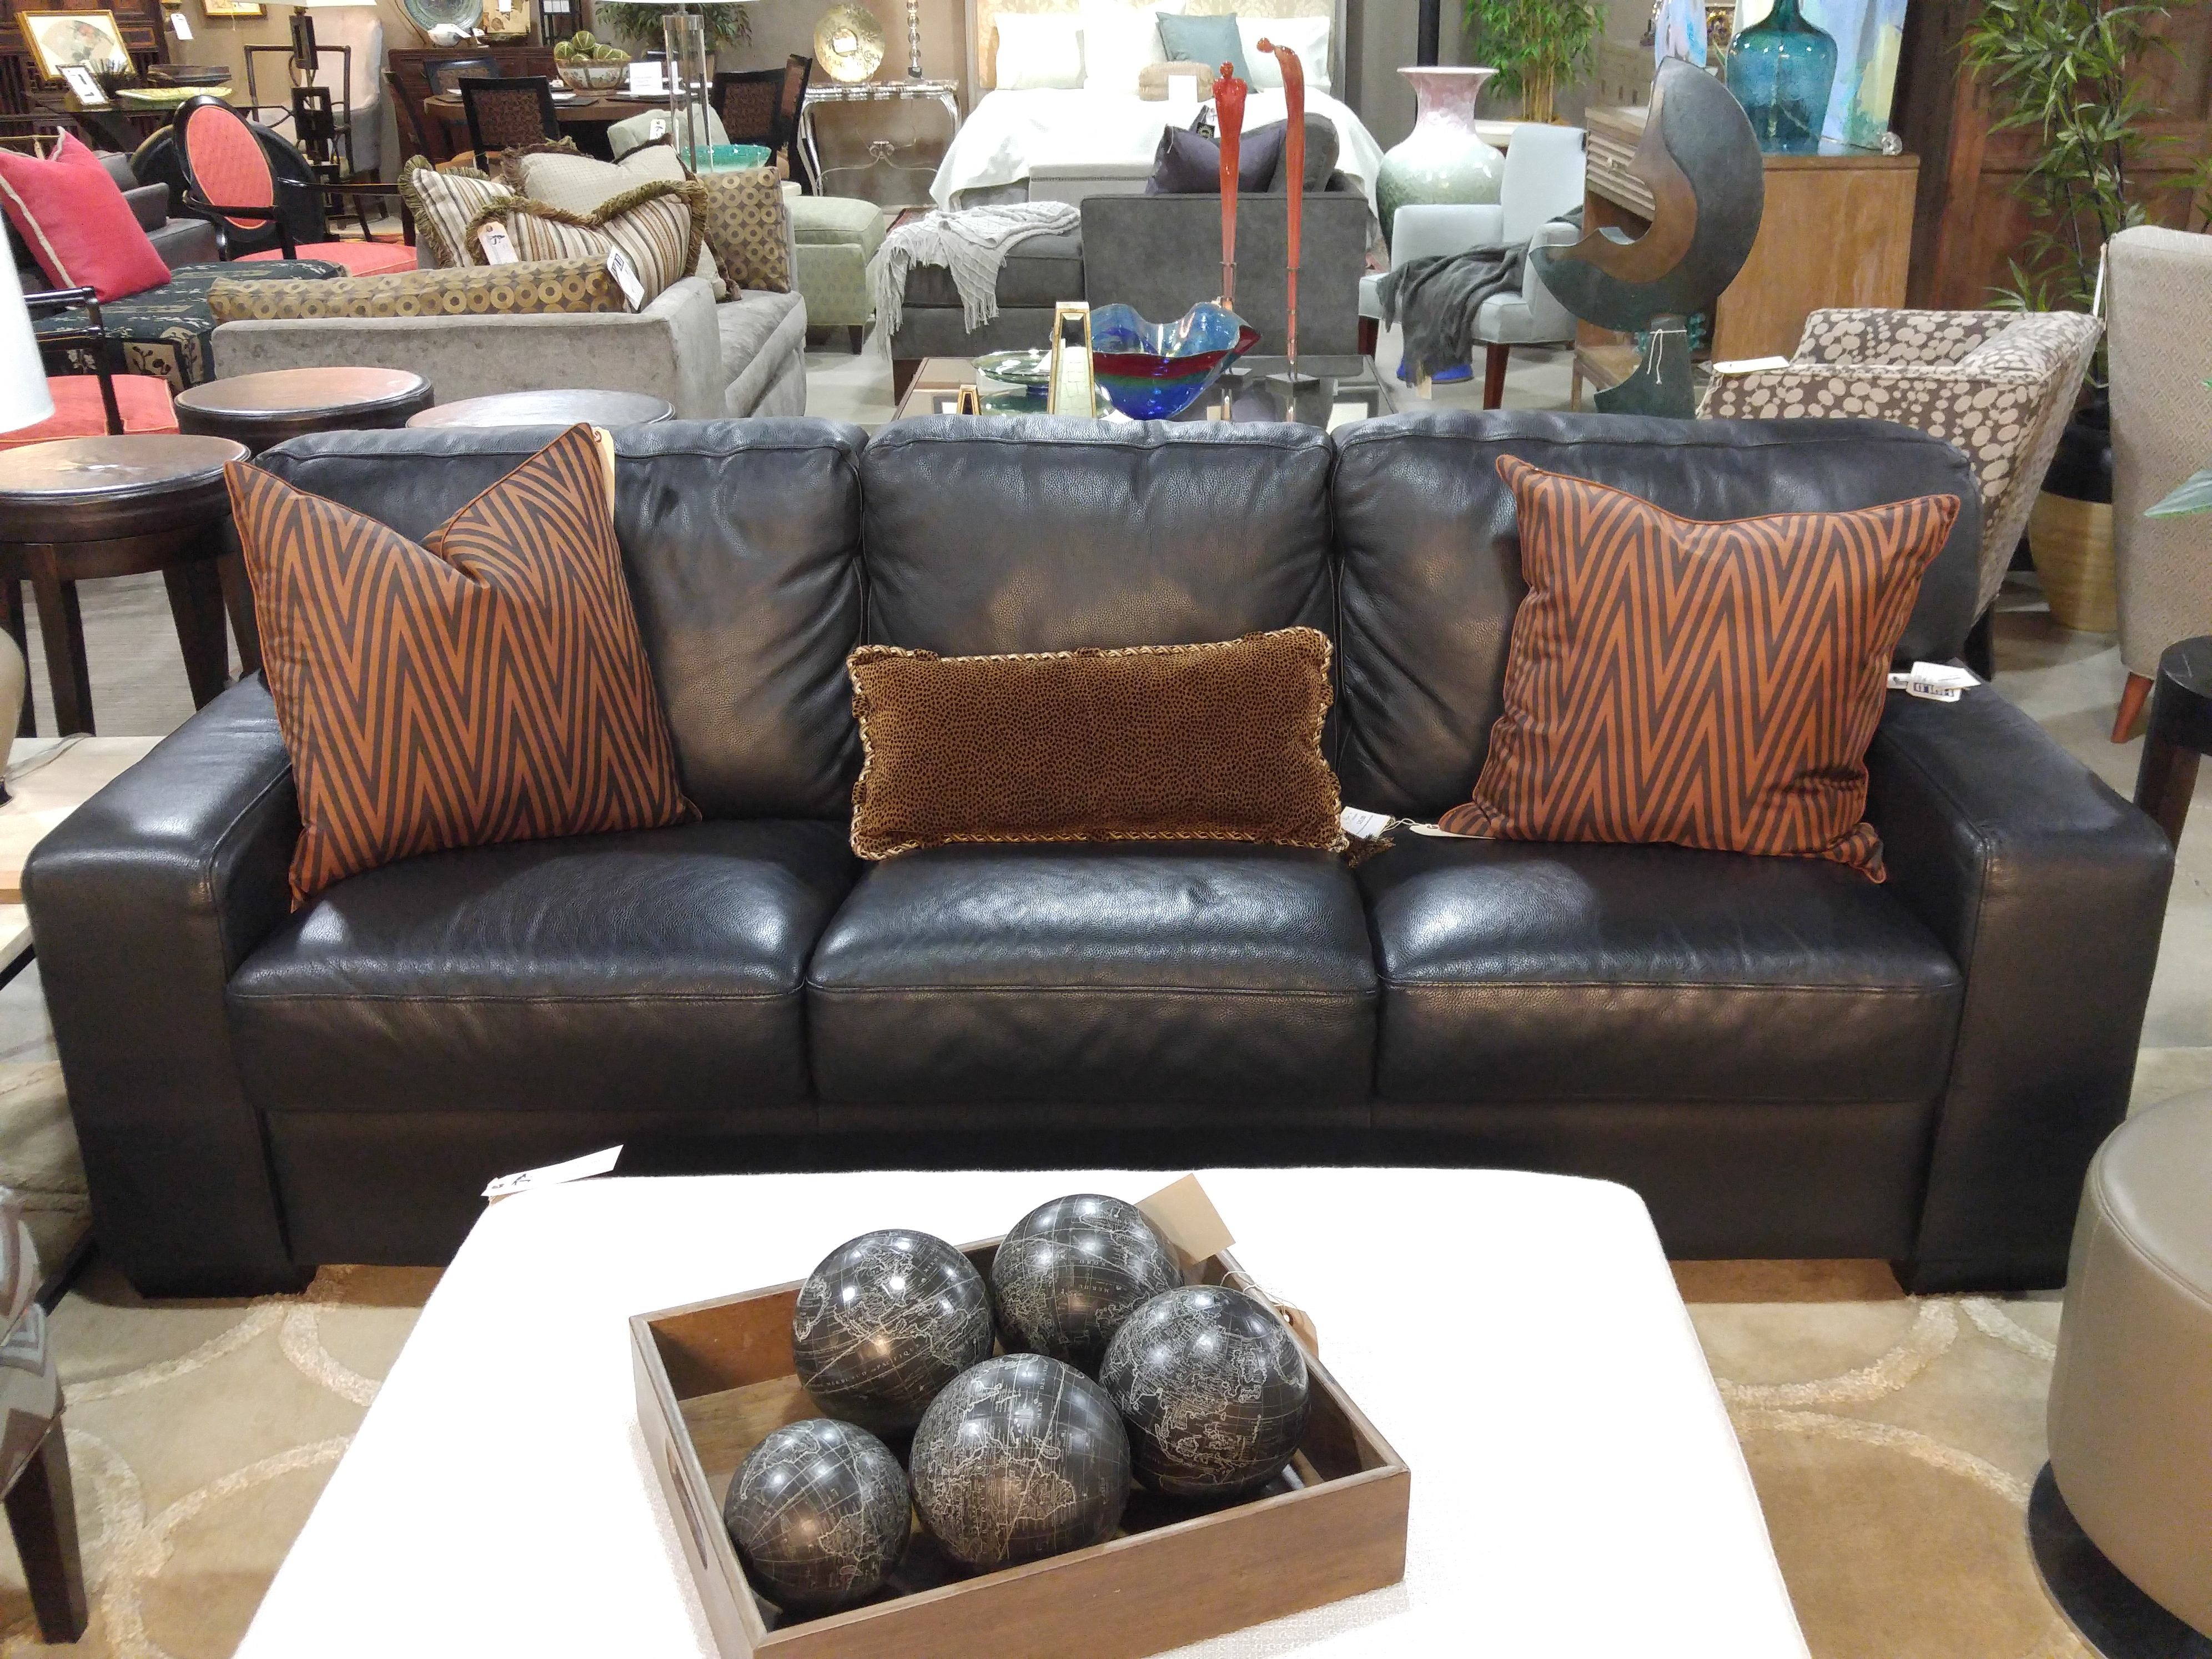 A Smart, Simple Black Leather Three Cushion Sofa From Dania Furniture  Starts Us Off Today. Squared, Track Arms And Plush Cushions Provide Comfort  And Style.